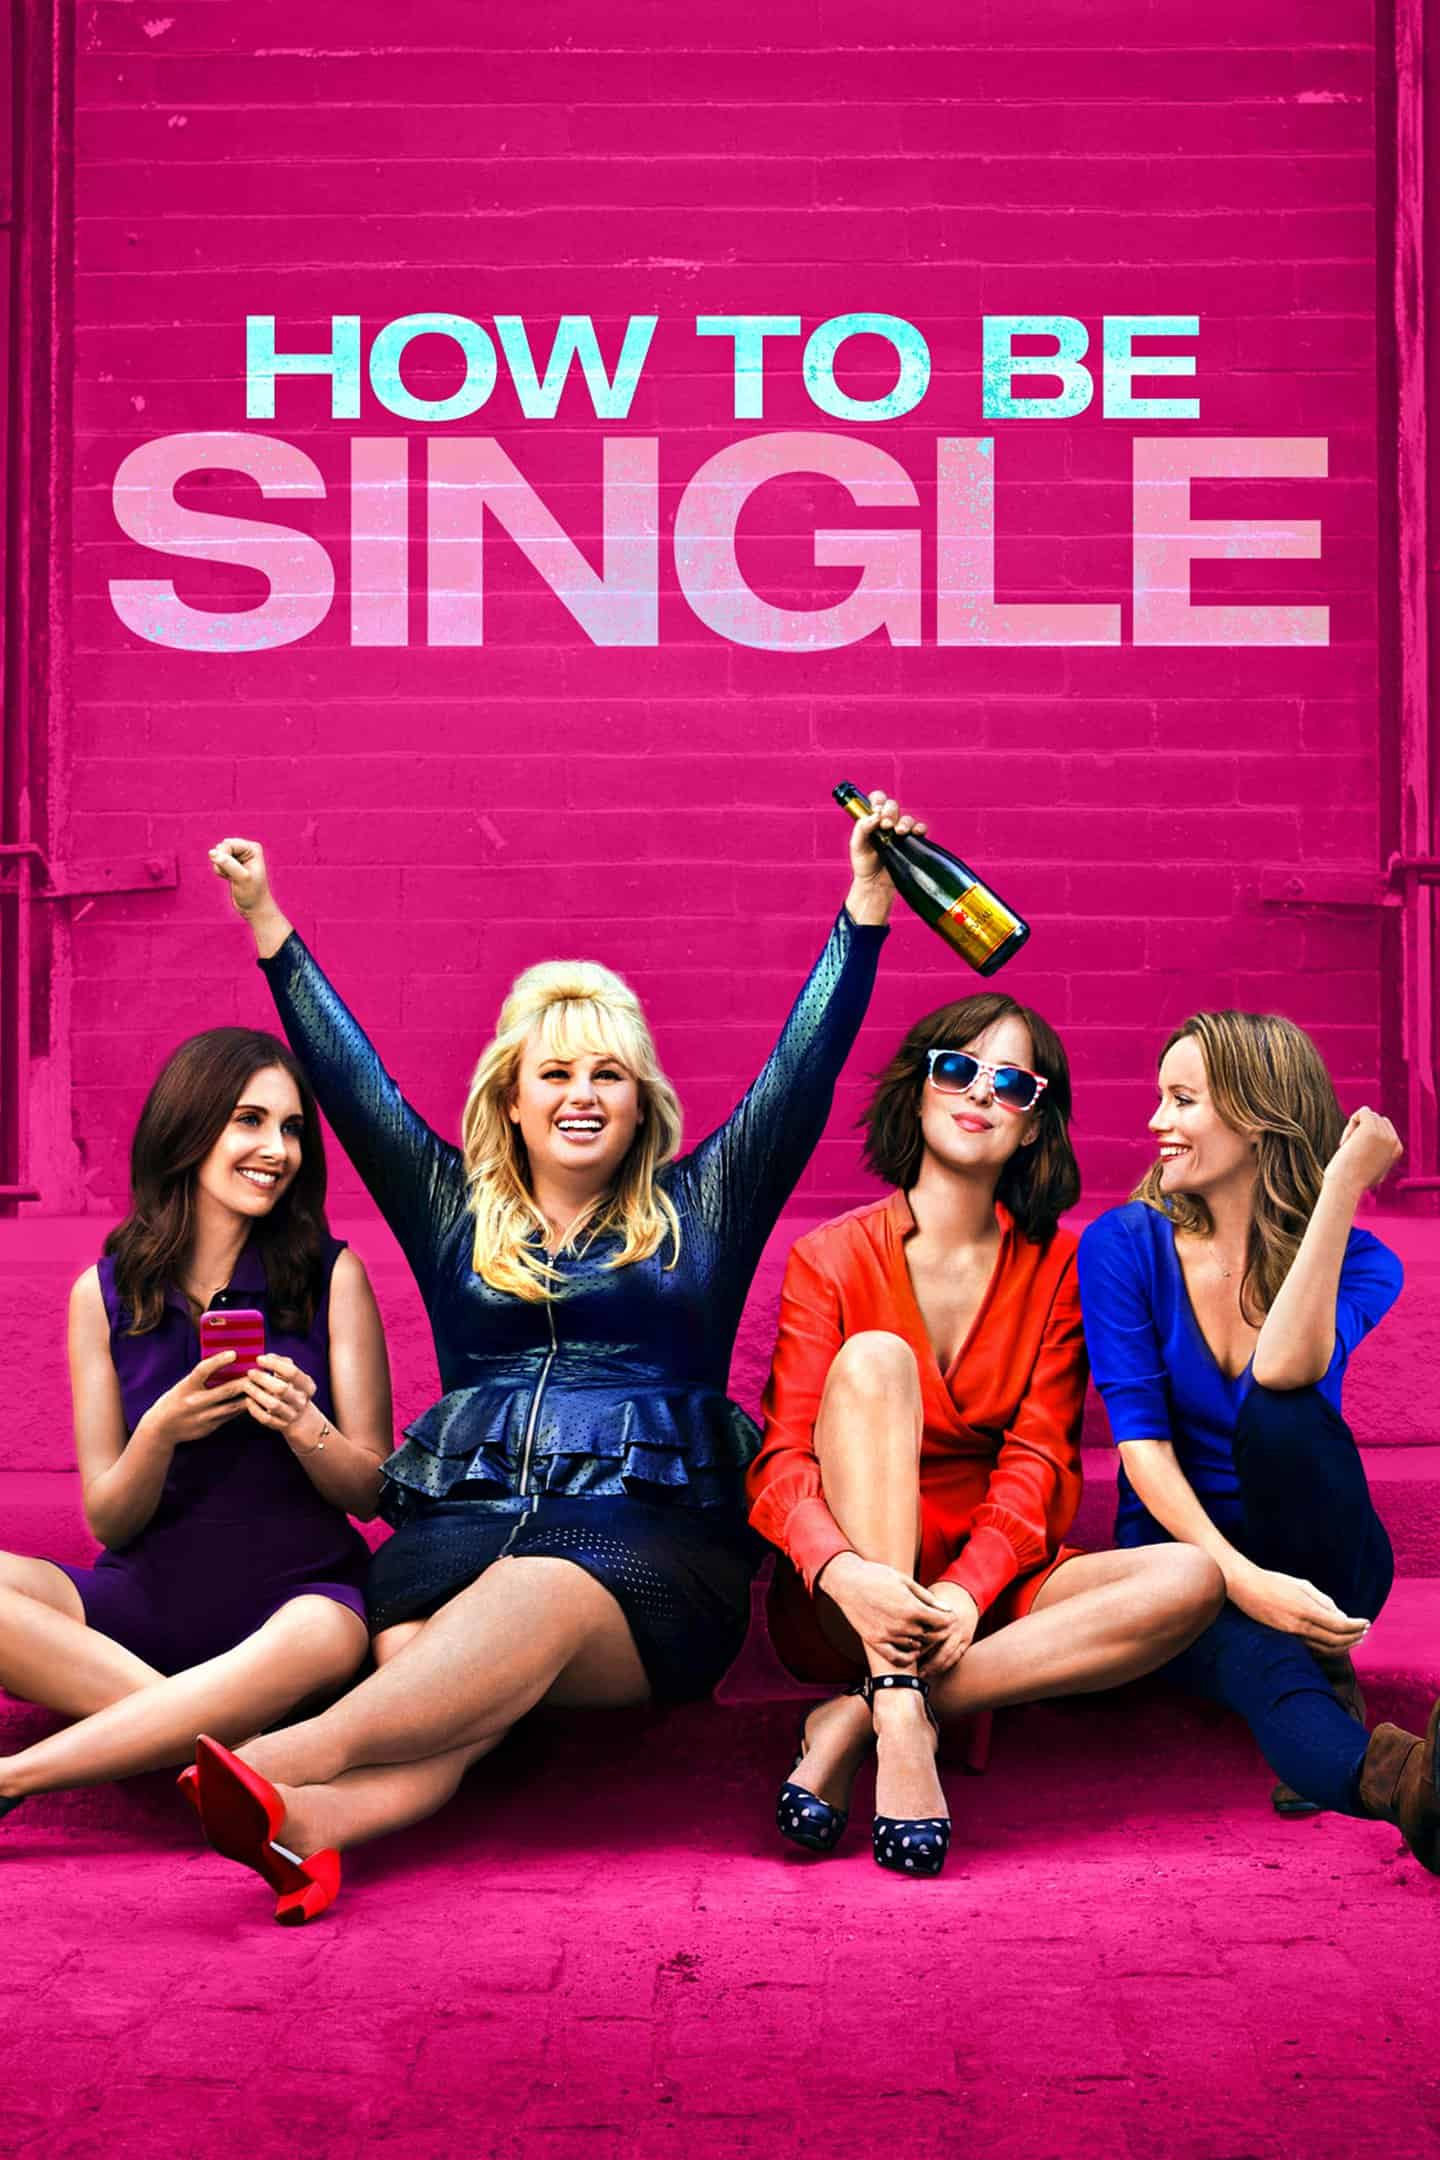 How to Be Single, 2016